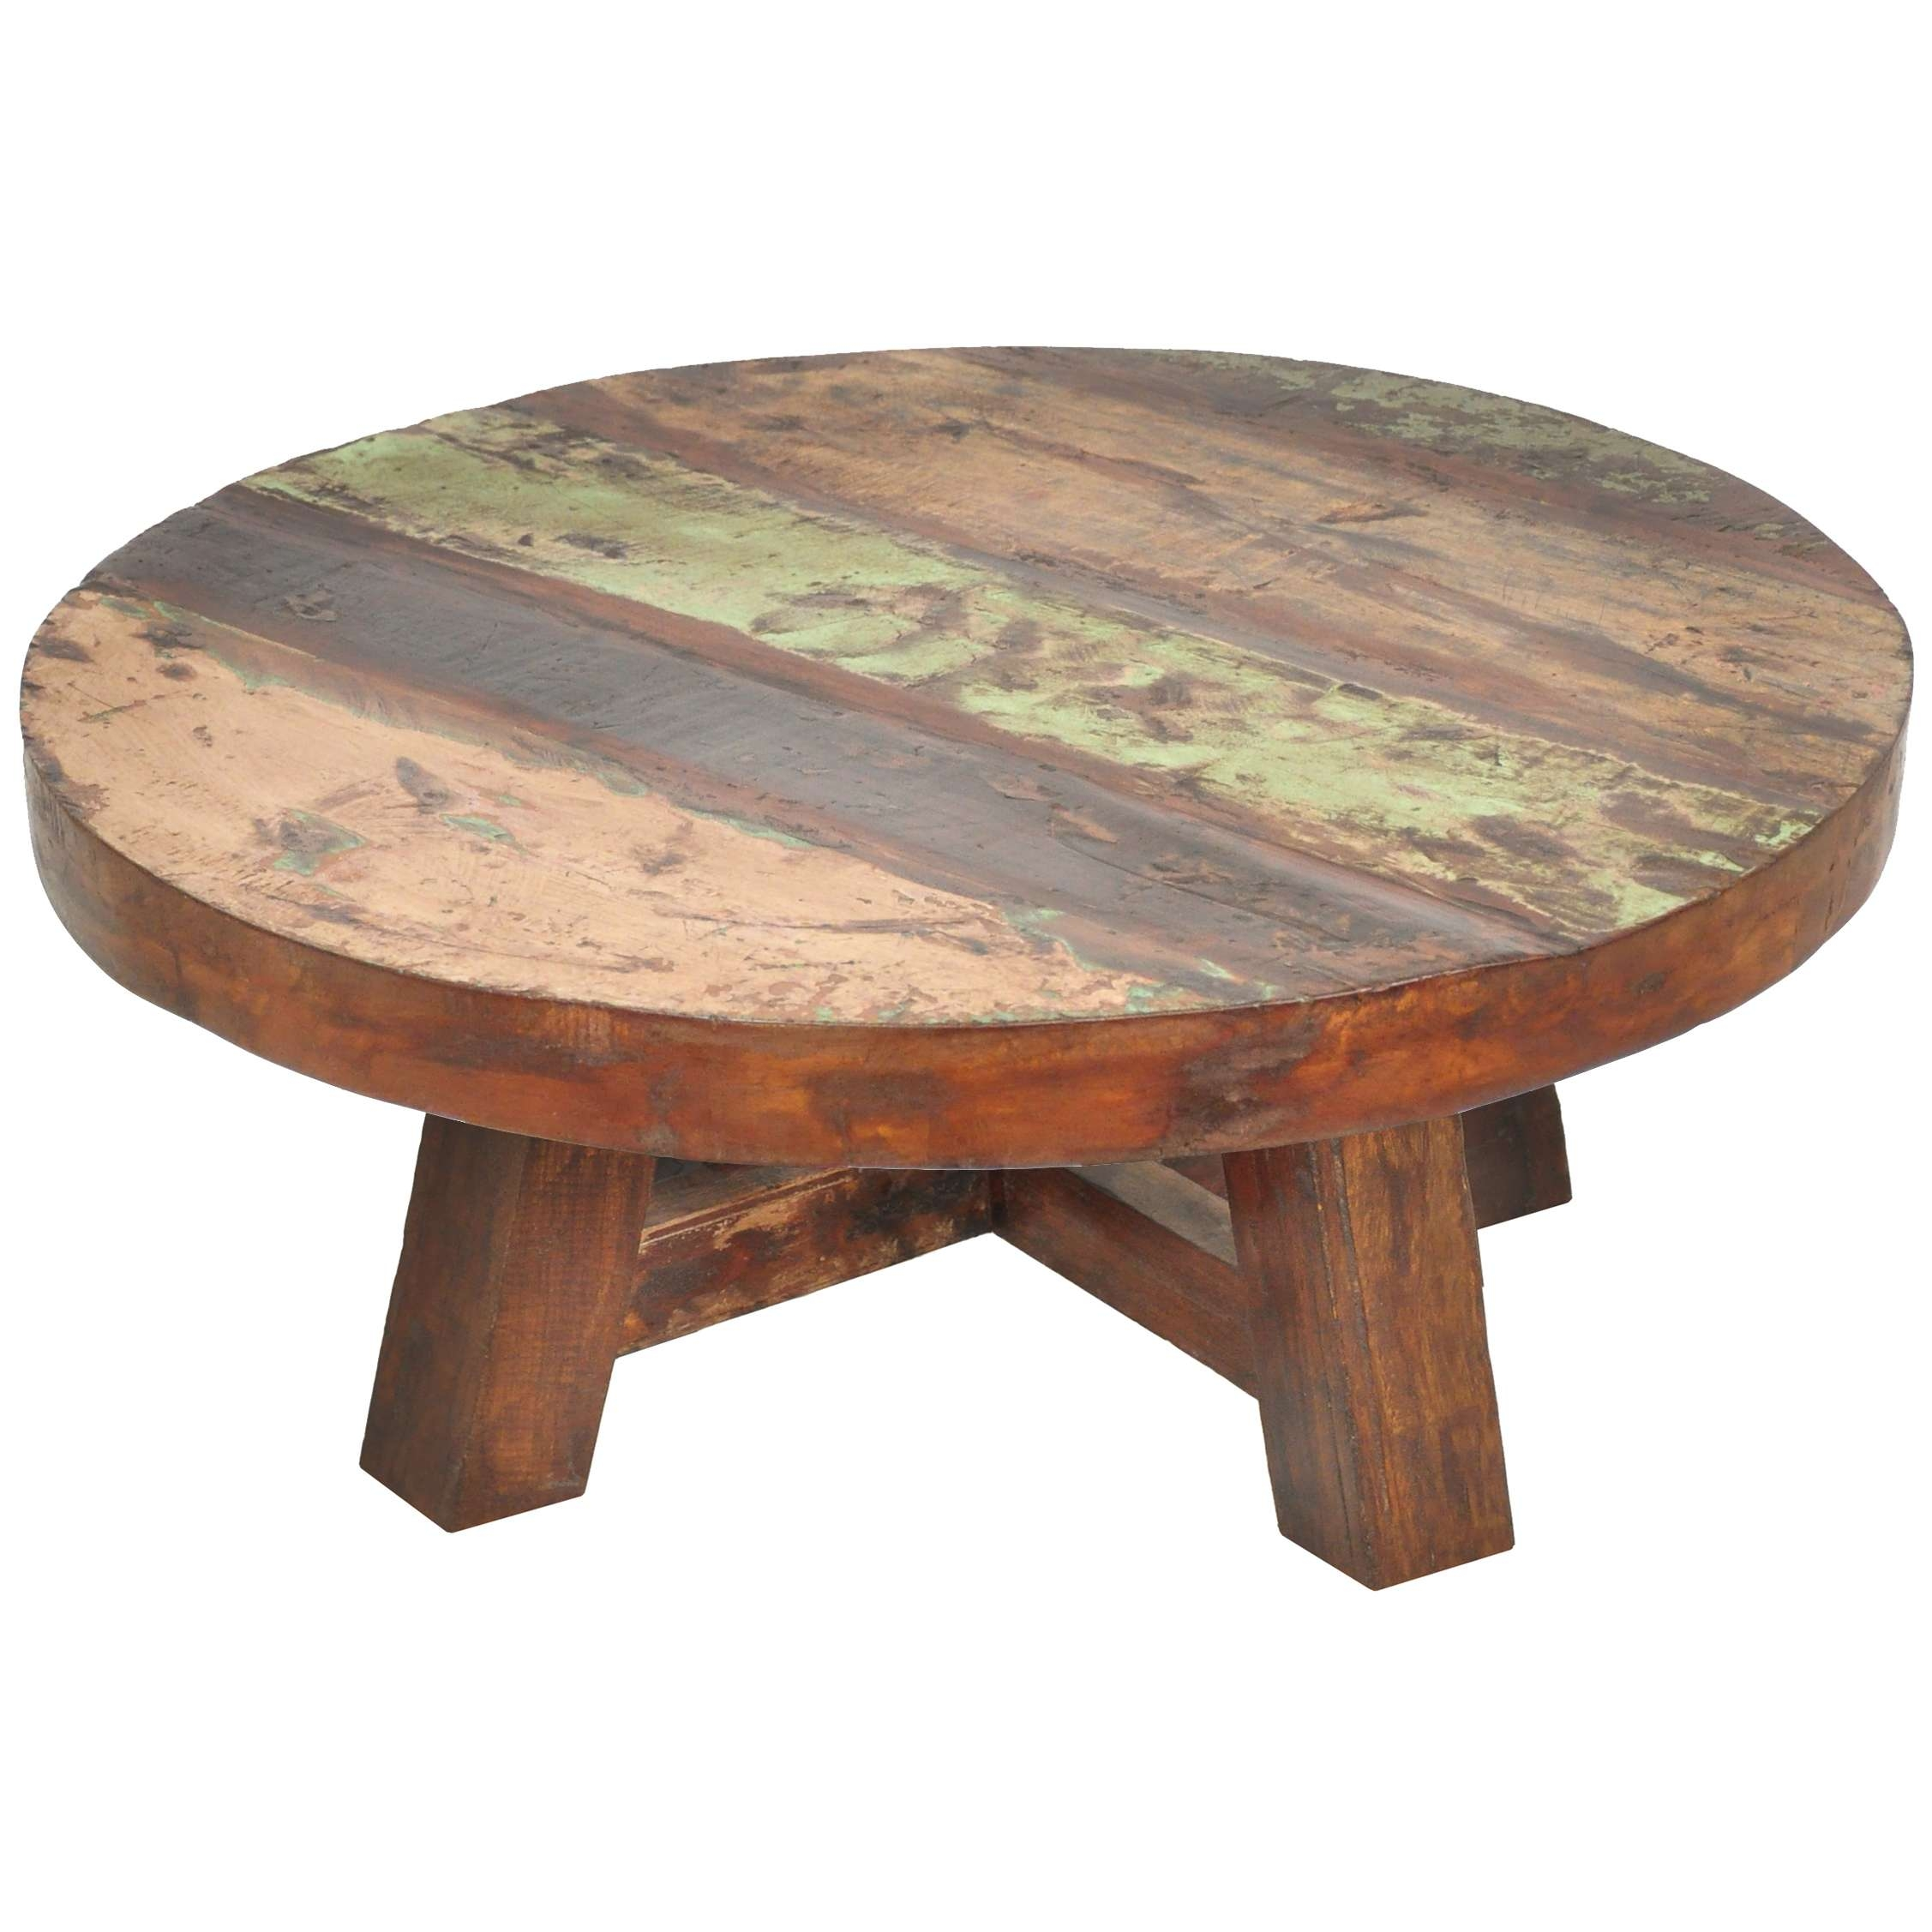 Decorations : Arrangement Reclaimed Wood Coffee Table Small For With Favorite Small Wood Coffee Tables (View 6 of 20)